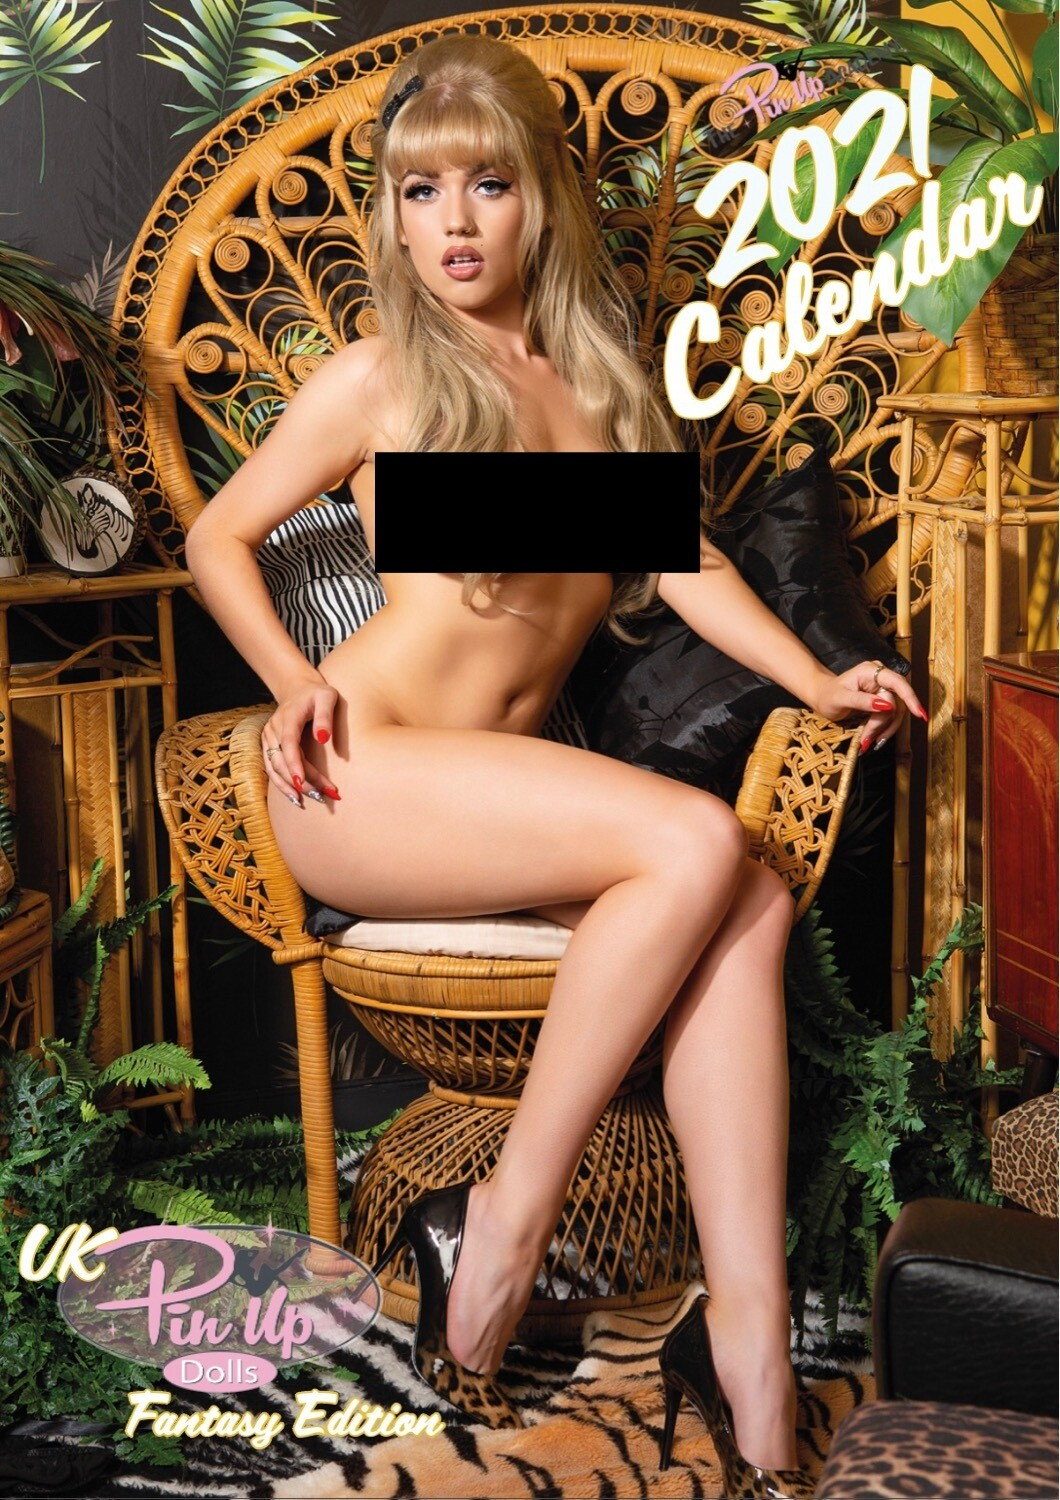 The Pinup Academy 2021 Calendar - Fantasy Edition